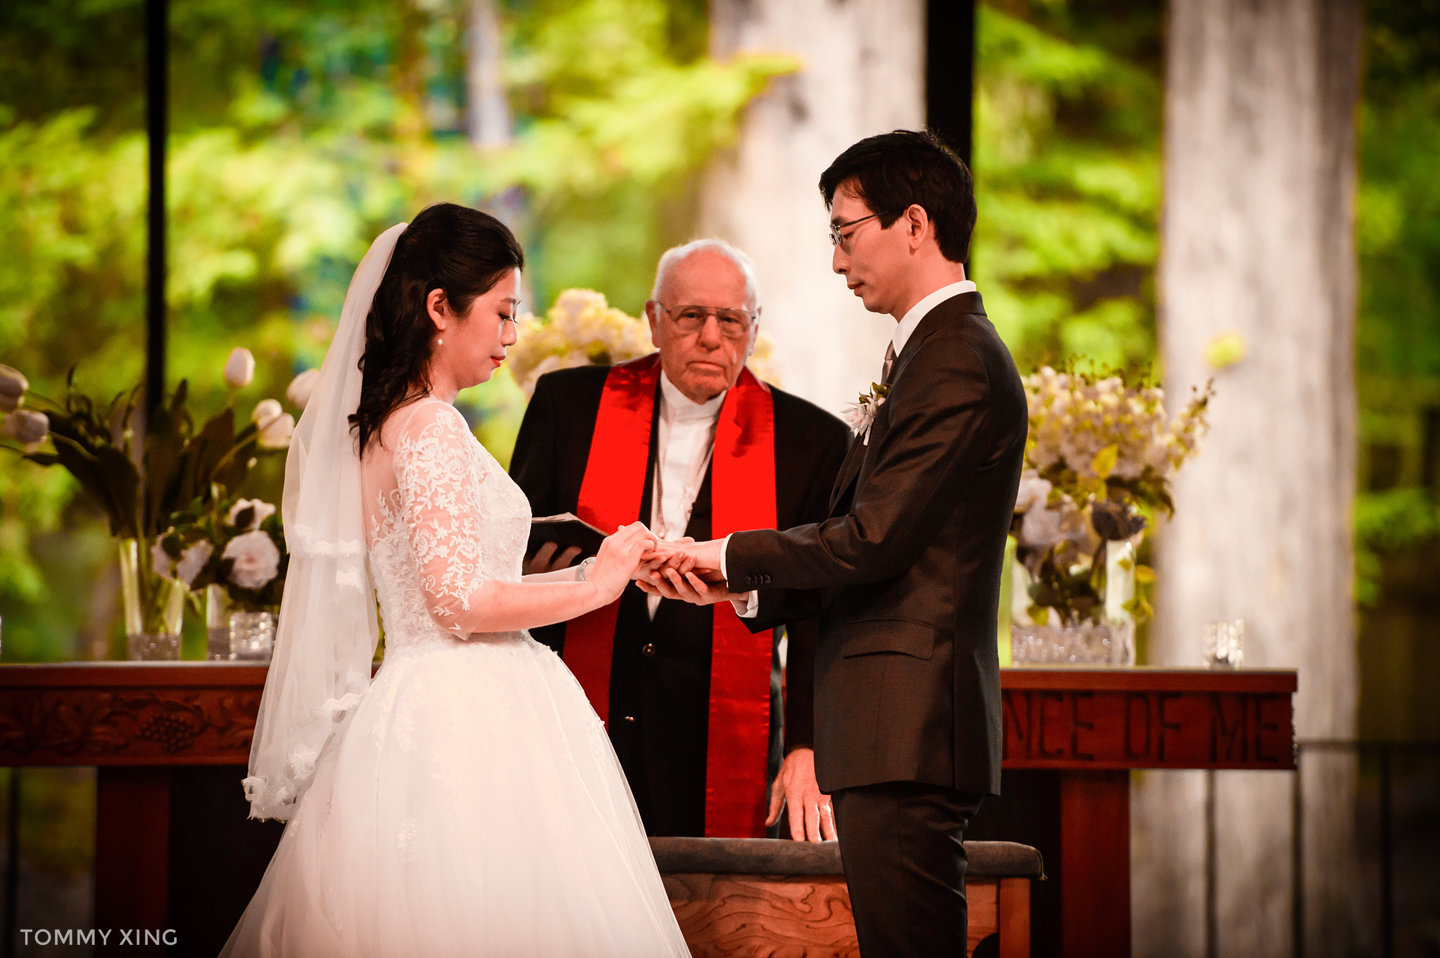 San Francisco Wedding Photography Valley Presbyterian Church WEDDING Tommy Xing Photography 洛杉矶旧金山婚礼婚纱照摄影师085.jpg